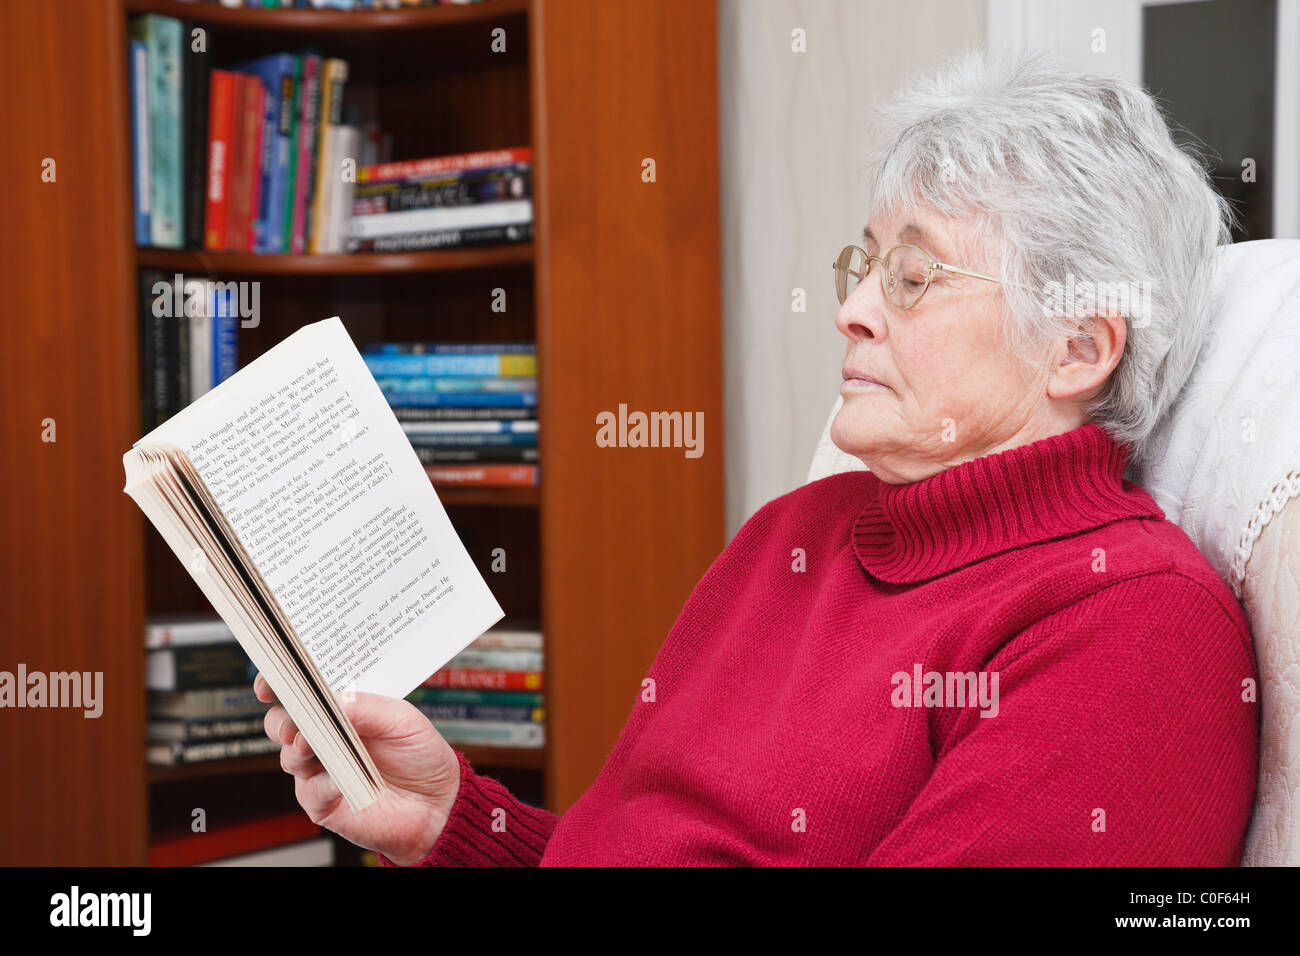 Someone elderly woman wearing a red jumper relaxing sat reading a paperback book in a living room with a bookcase - Stock Image